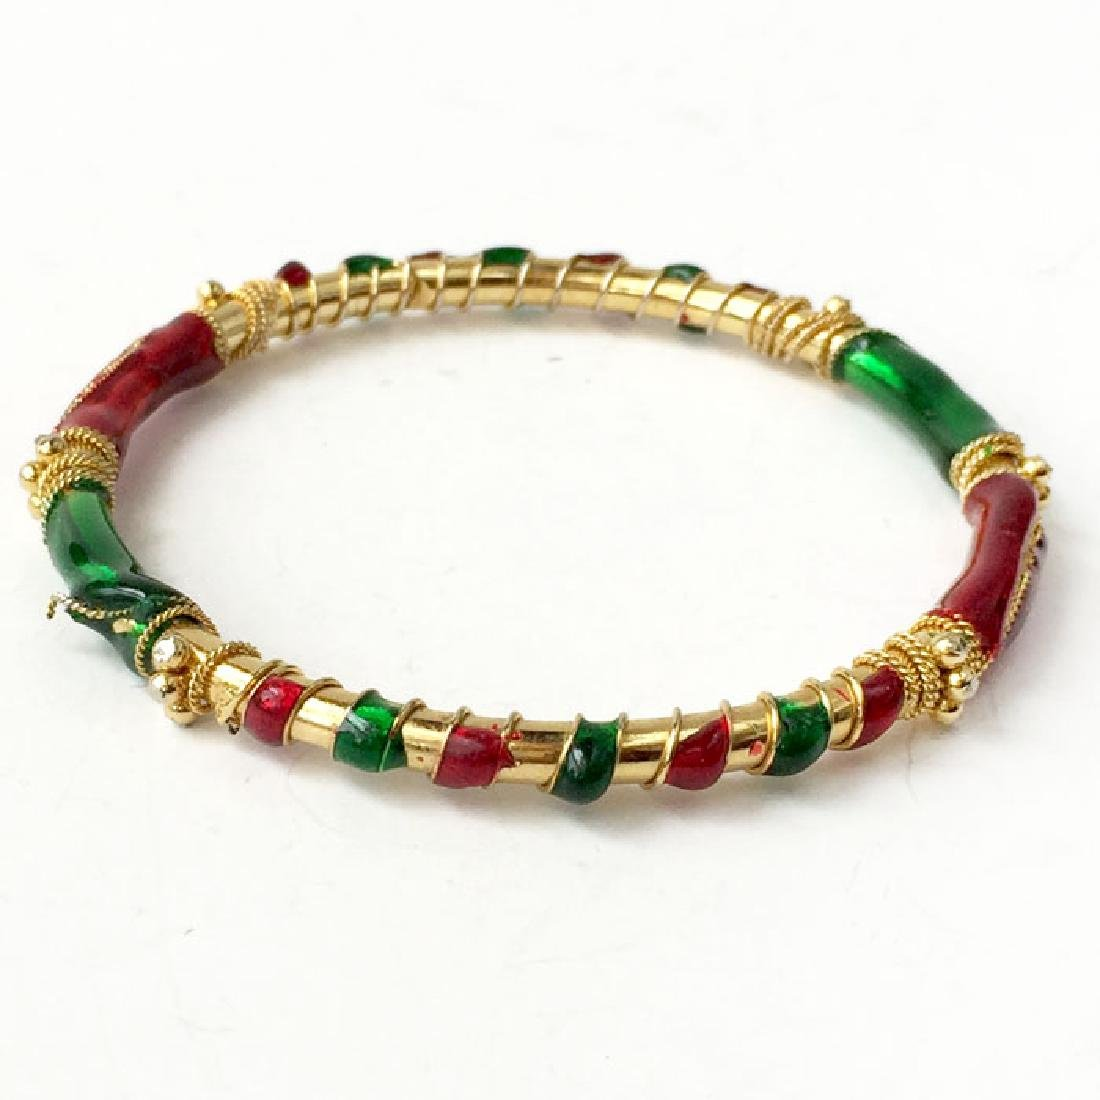 Gold plated bangle bracelet with wire design and enamel